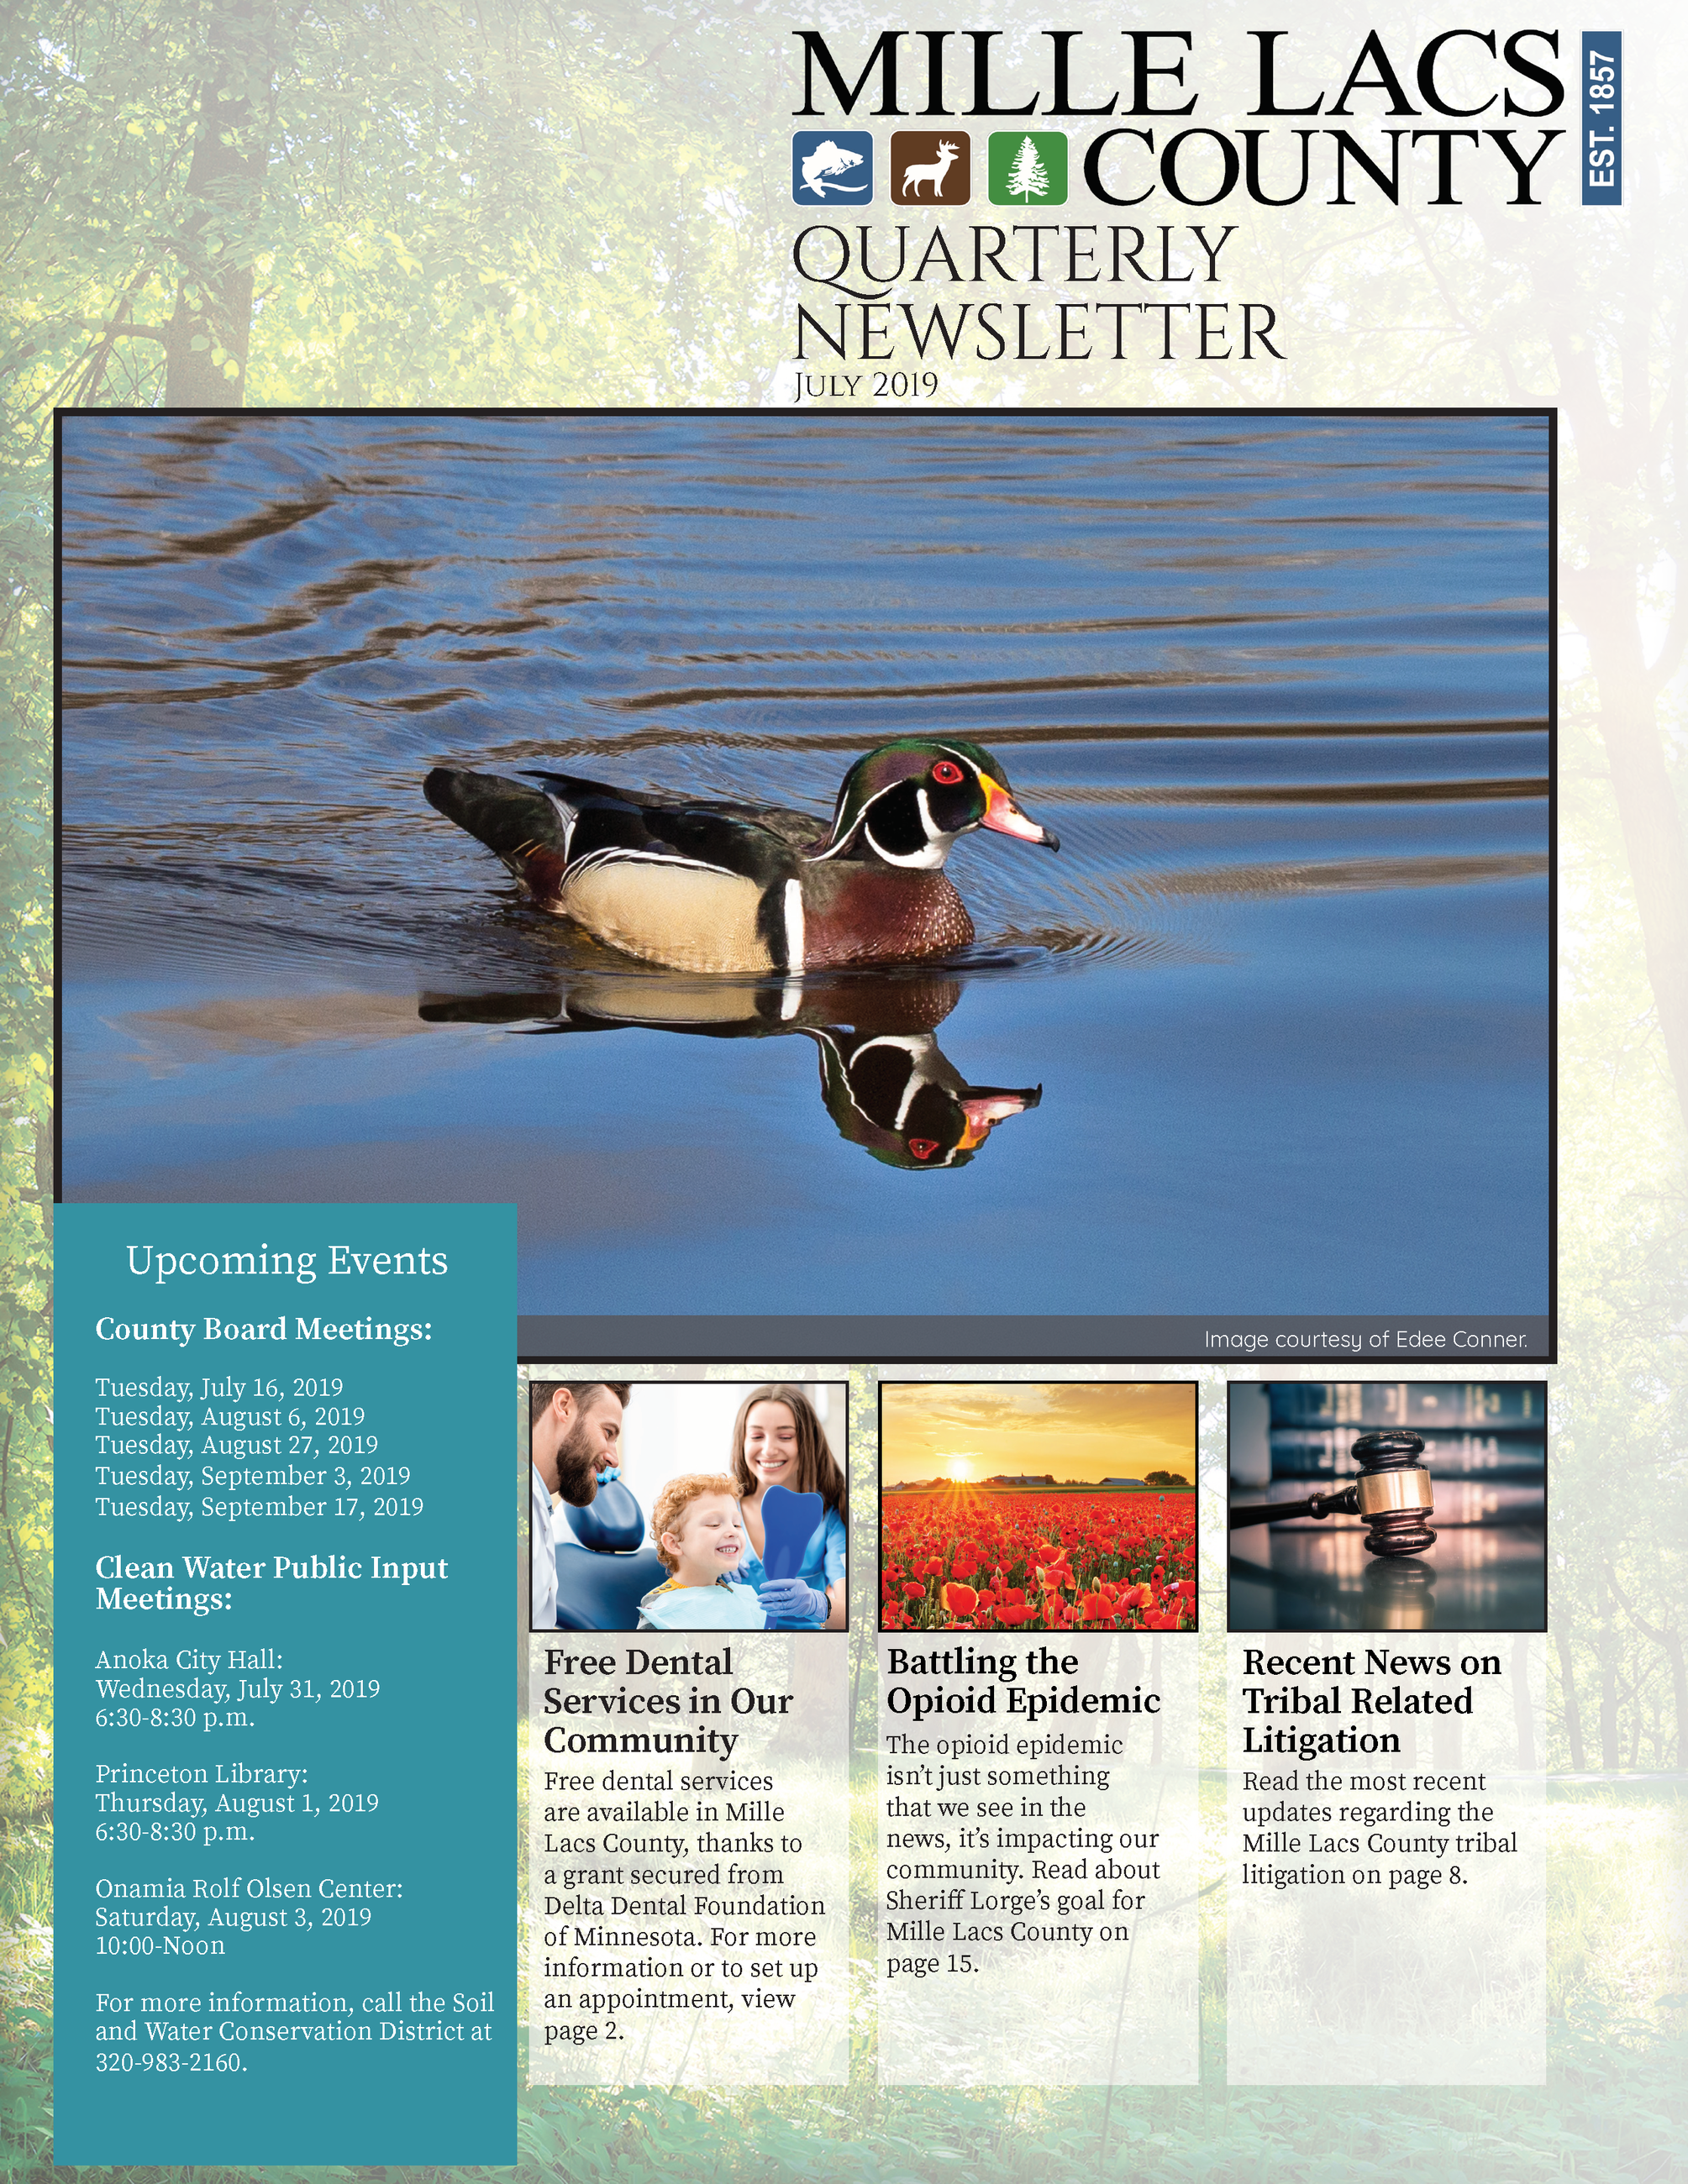 Mille Lacs County Quarterly Newsletter: July 2019 Cover